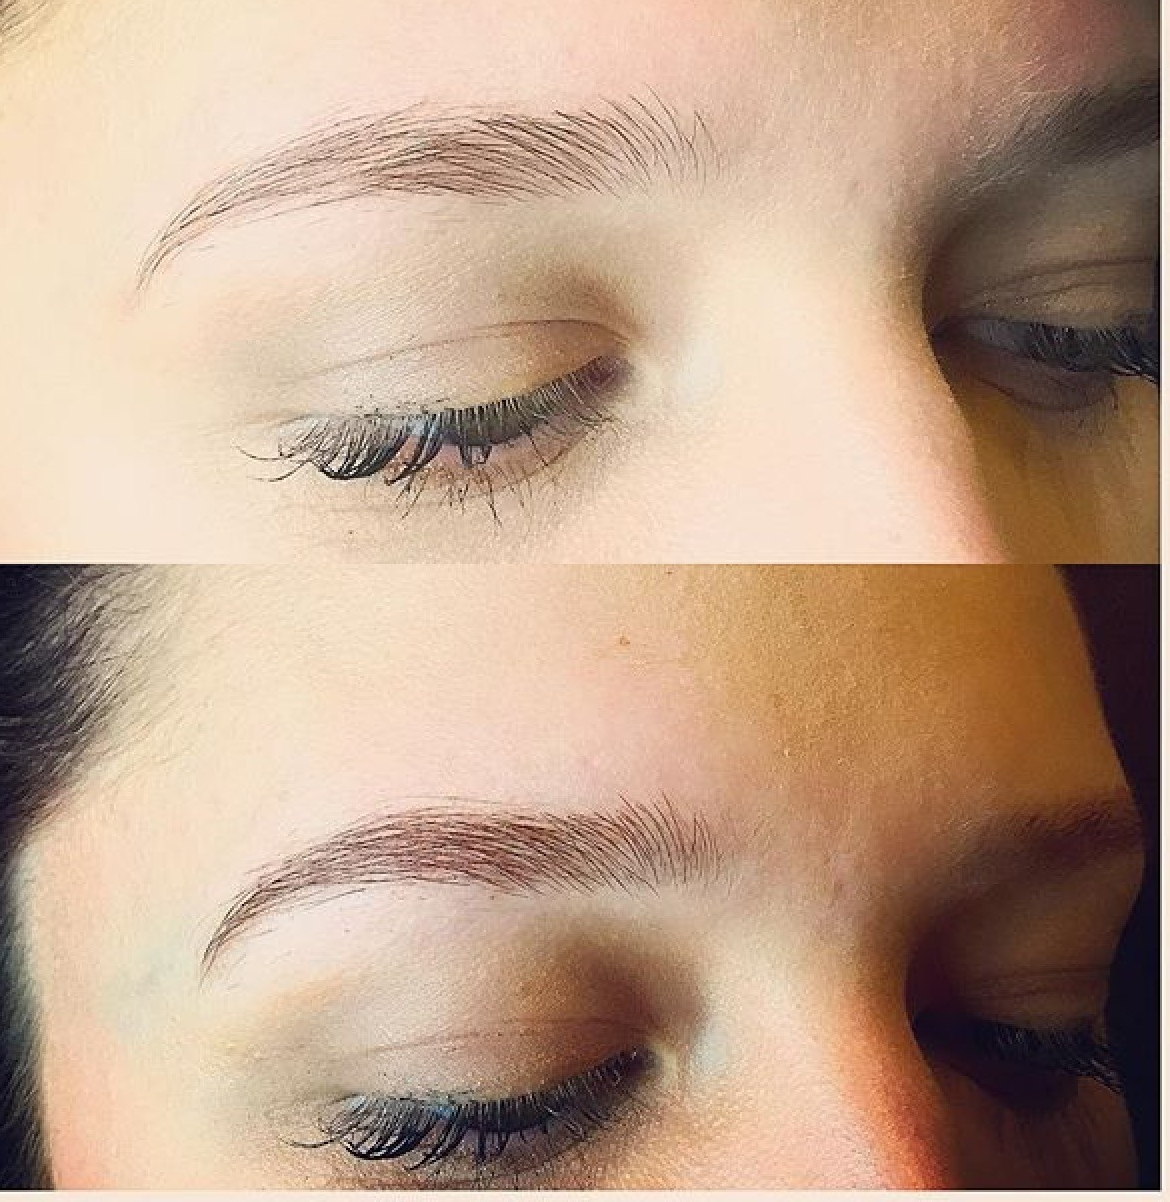 Brow Tint ($20) - A form of semi-permanent hair-dye formulated specifically for use on the eyebrows that lasts 3-4 weeks.